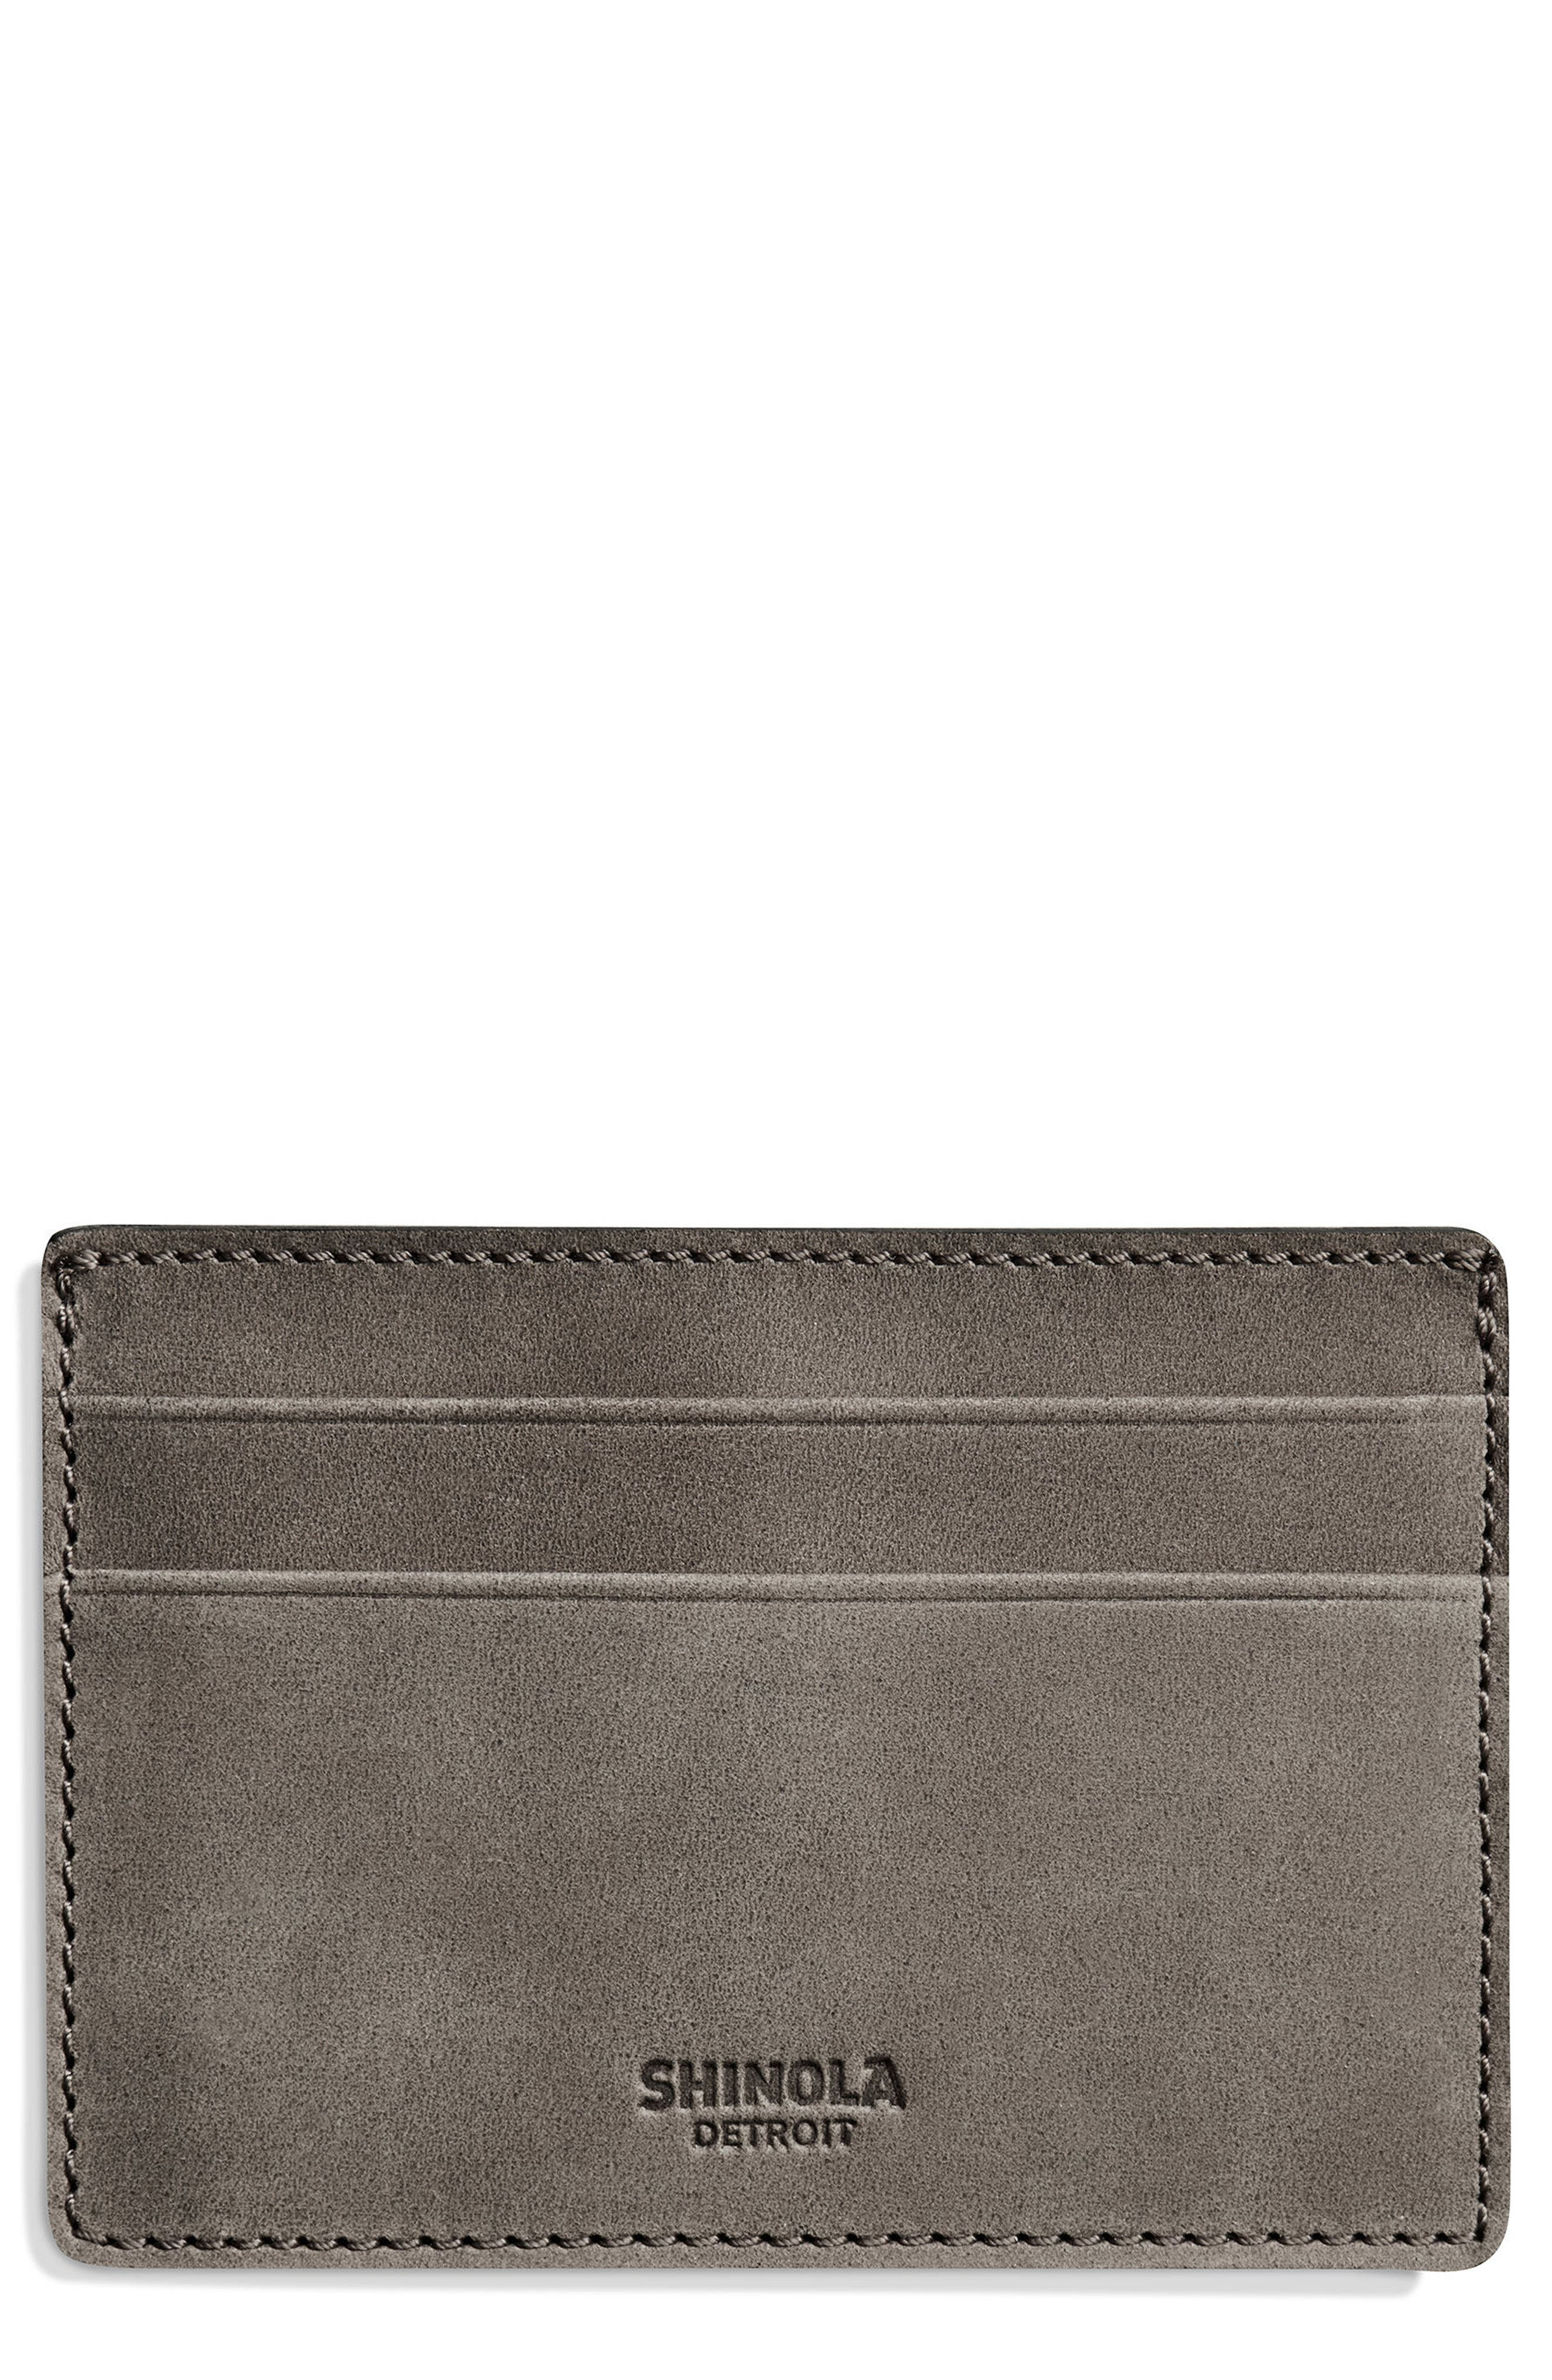 SHINOLA,                             Outrigger ID Leather Card Case,                             Main thumbnail 1, color,                             020